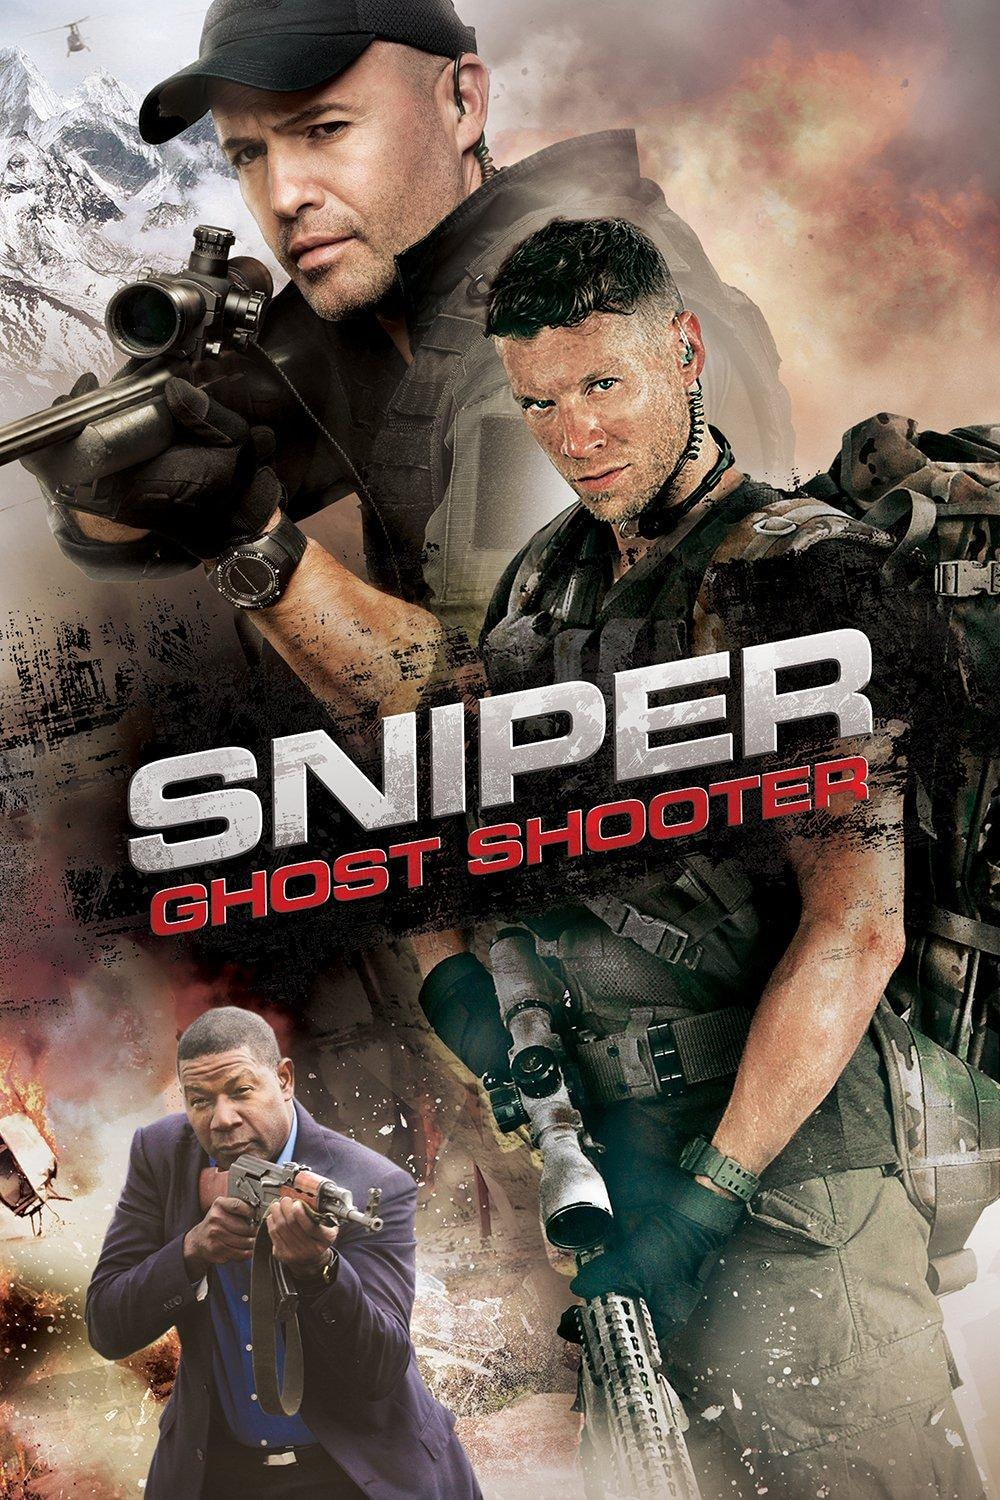 Sniper: Ghost Shooter Full Movie - Watch Online, Stream or Download